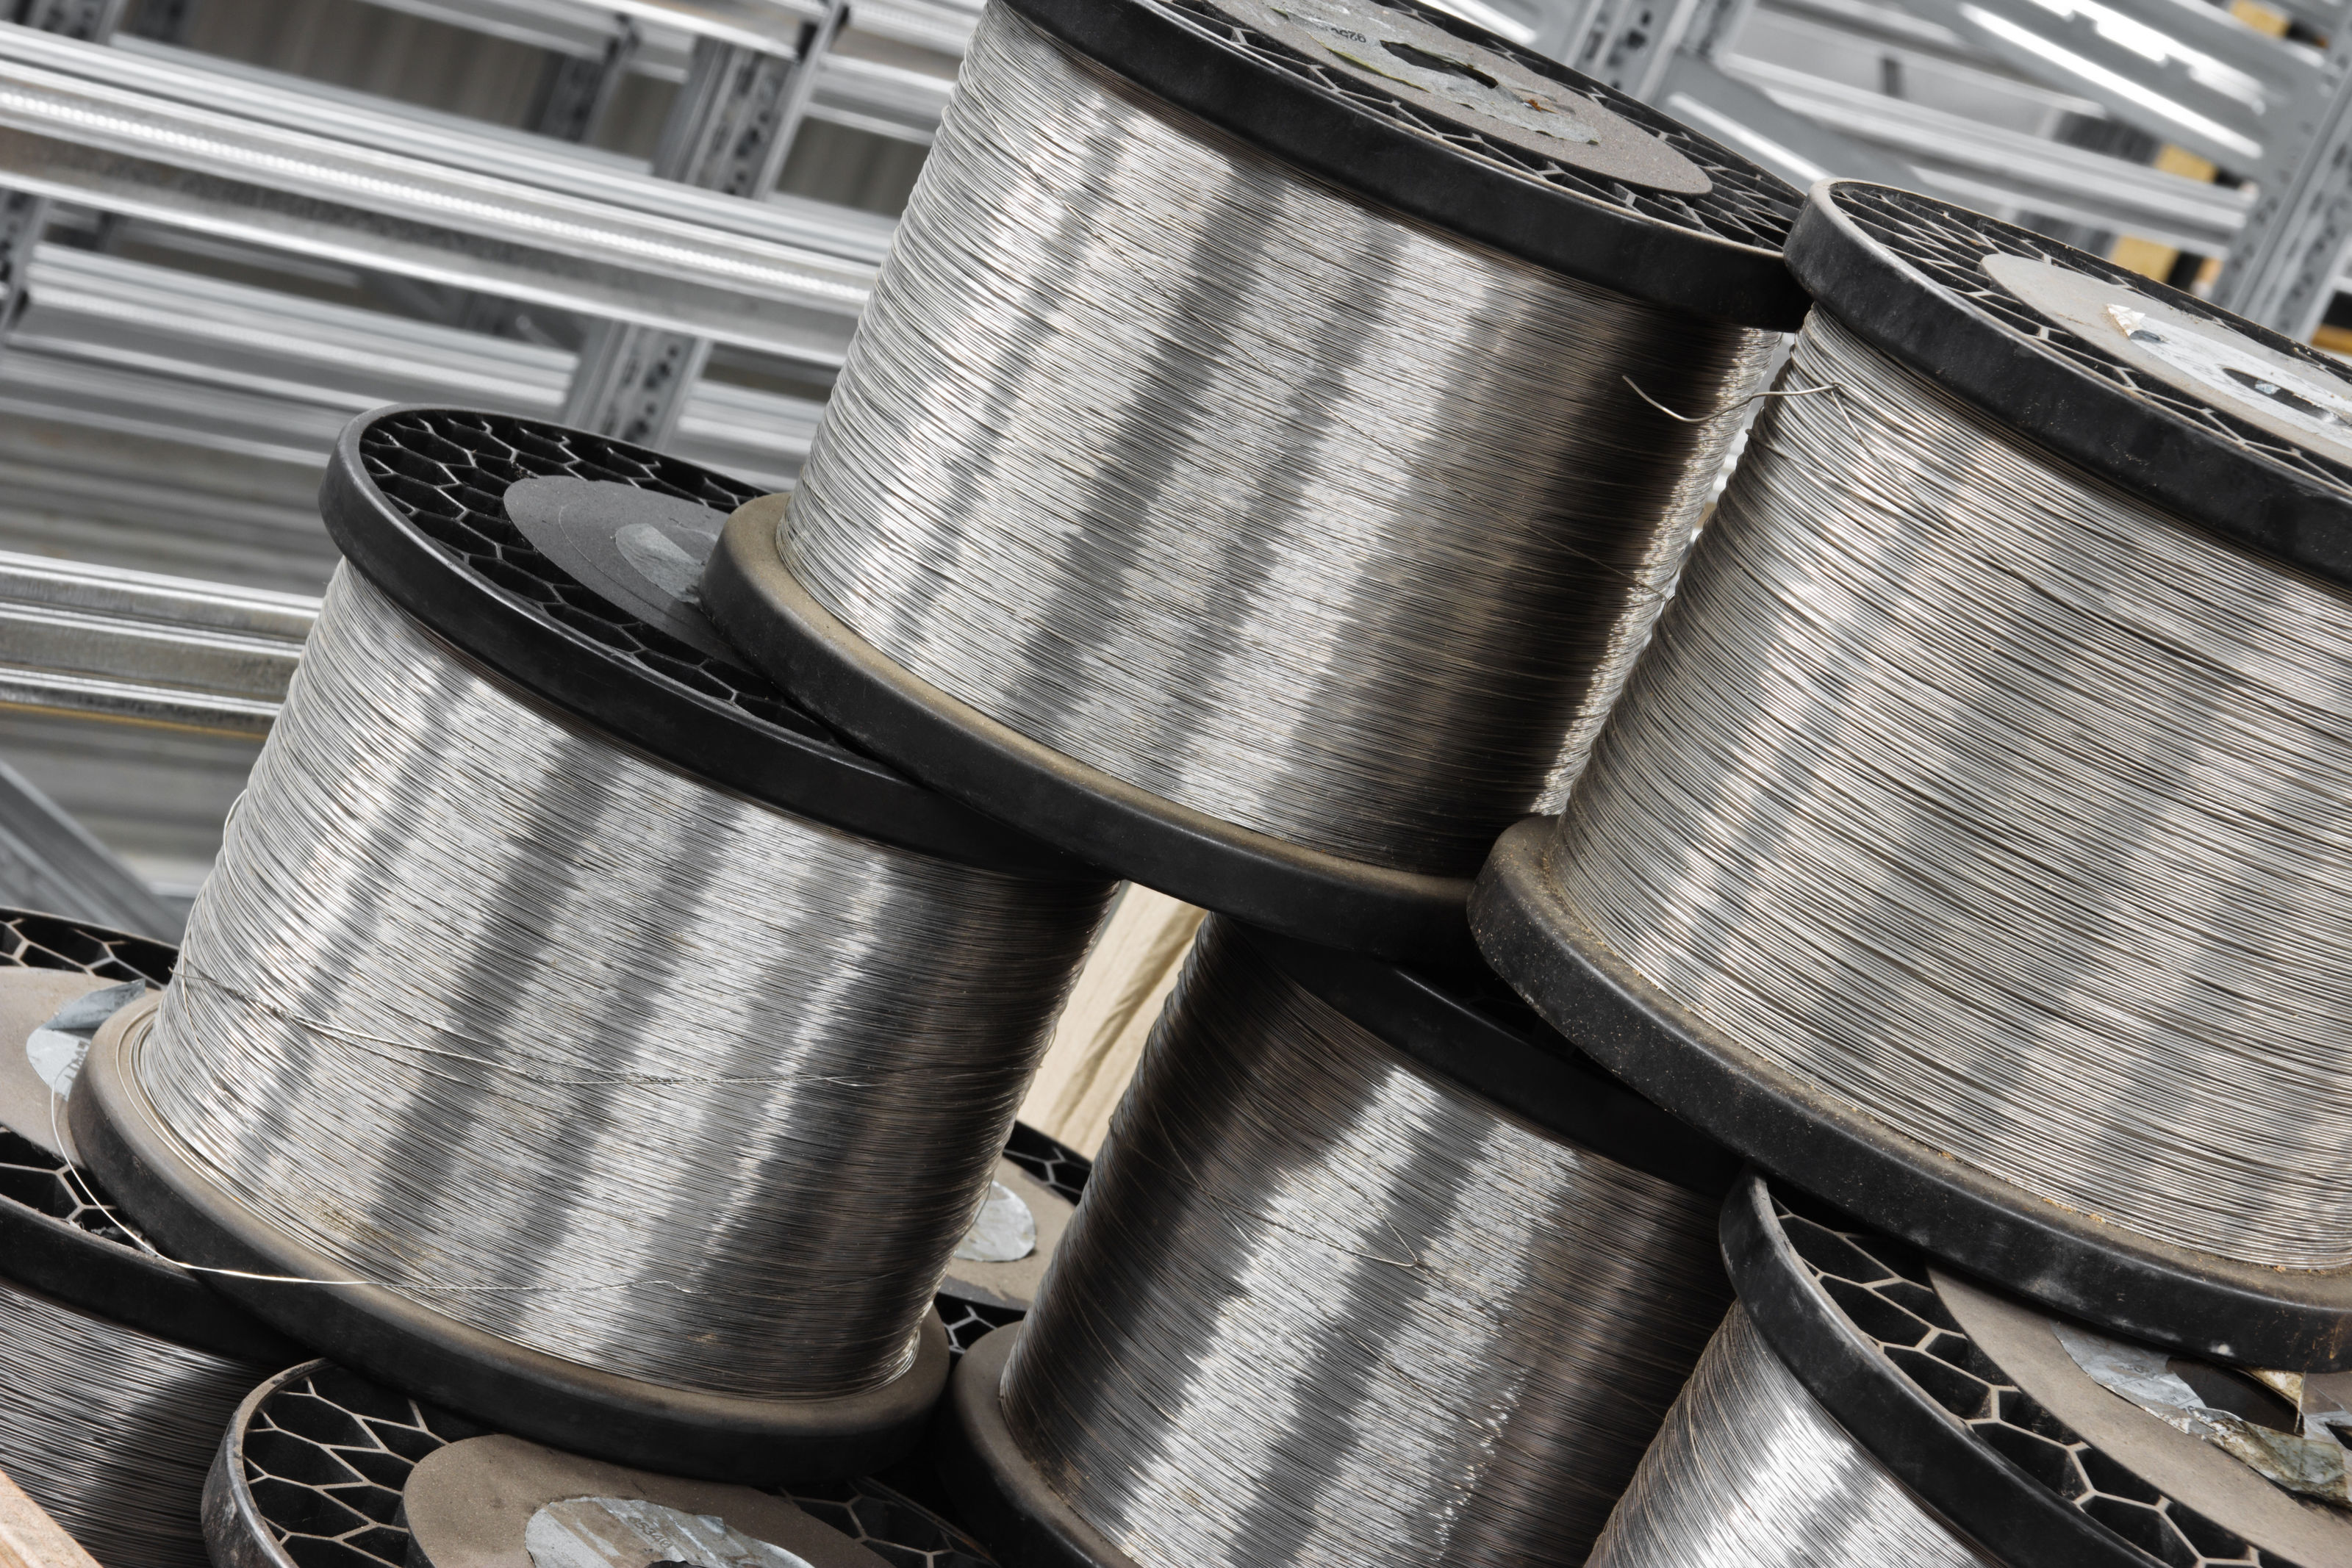 Formable Stainless Steel Wire Center Ook 50 Ft Aluminum Hobby Wire50176 The Home Depot Flawless Formability Rh Bsstainless Com Coil